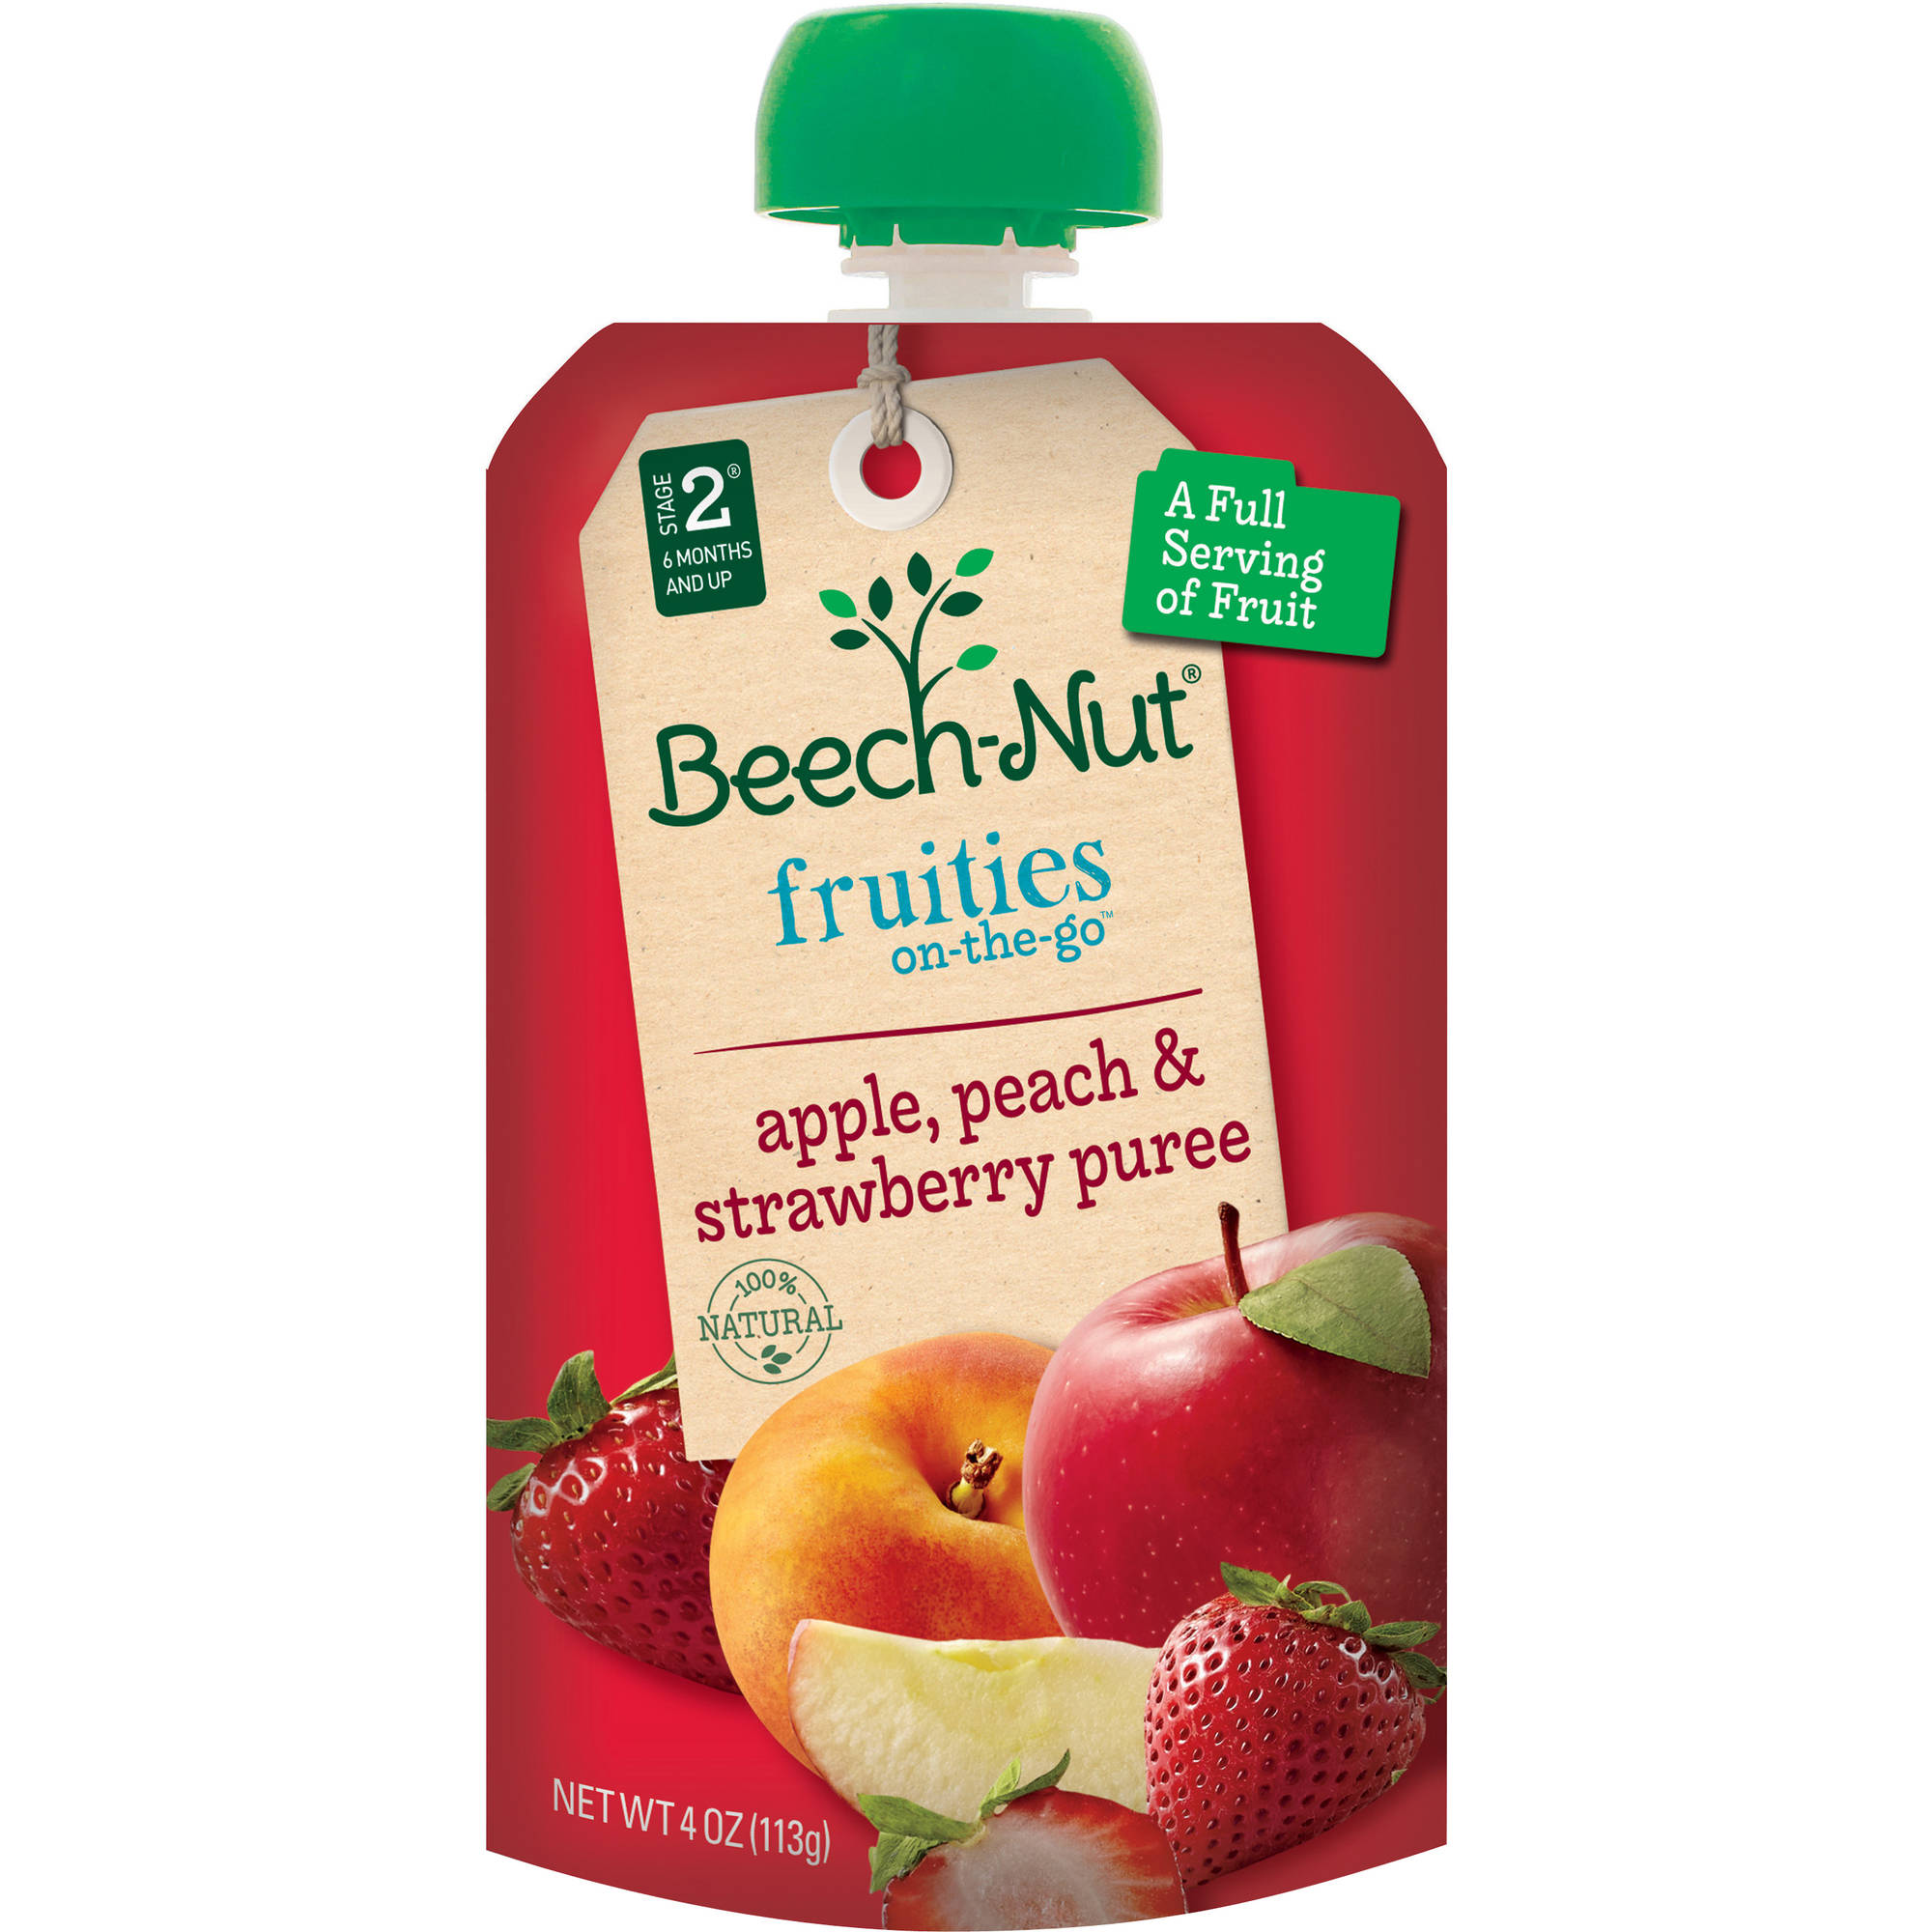 Beech-Nut Pouch Stage 2 Fruities On-the-Go Apple, Peach & Strawberry Pur?e, 4 oz, (Pack of 16)